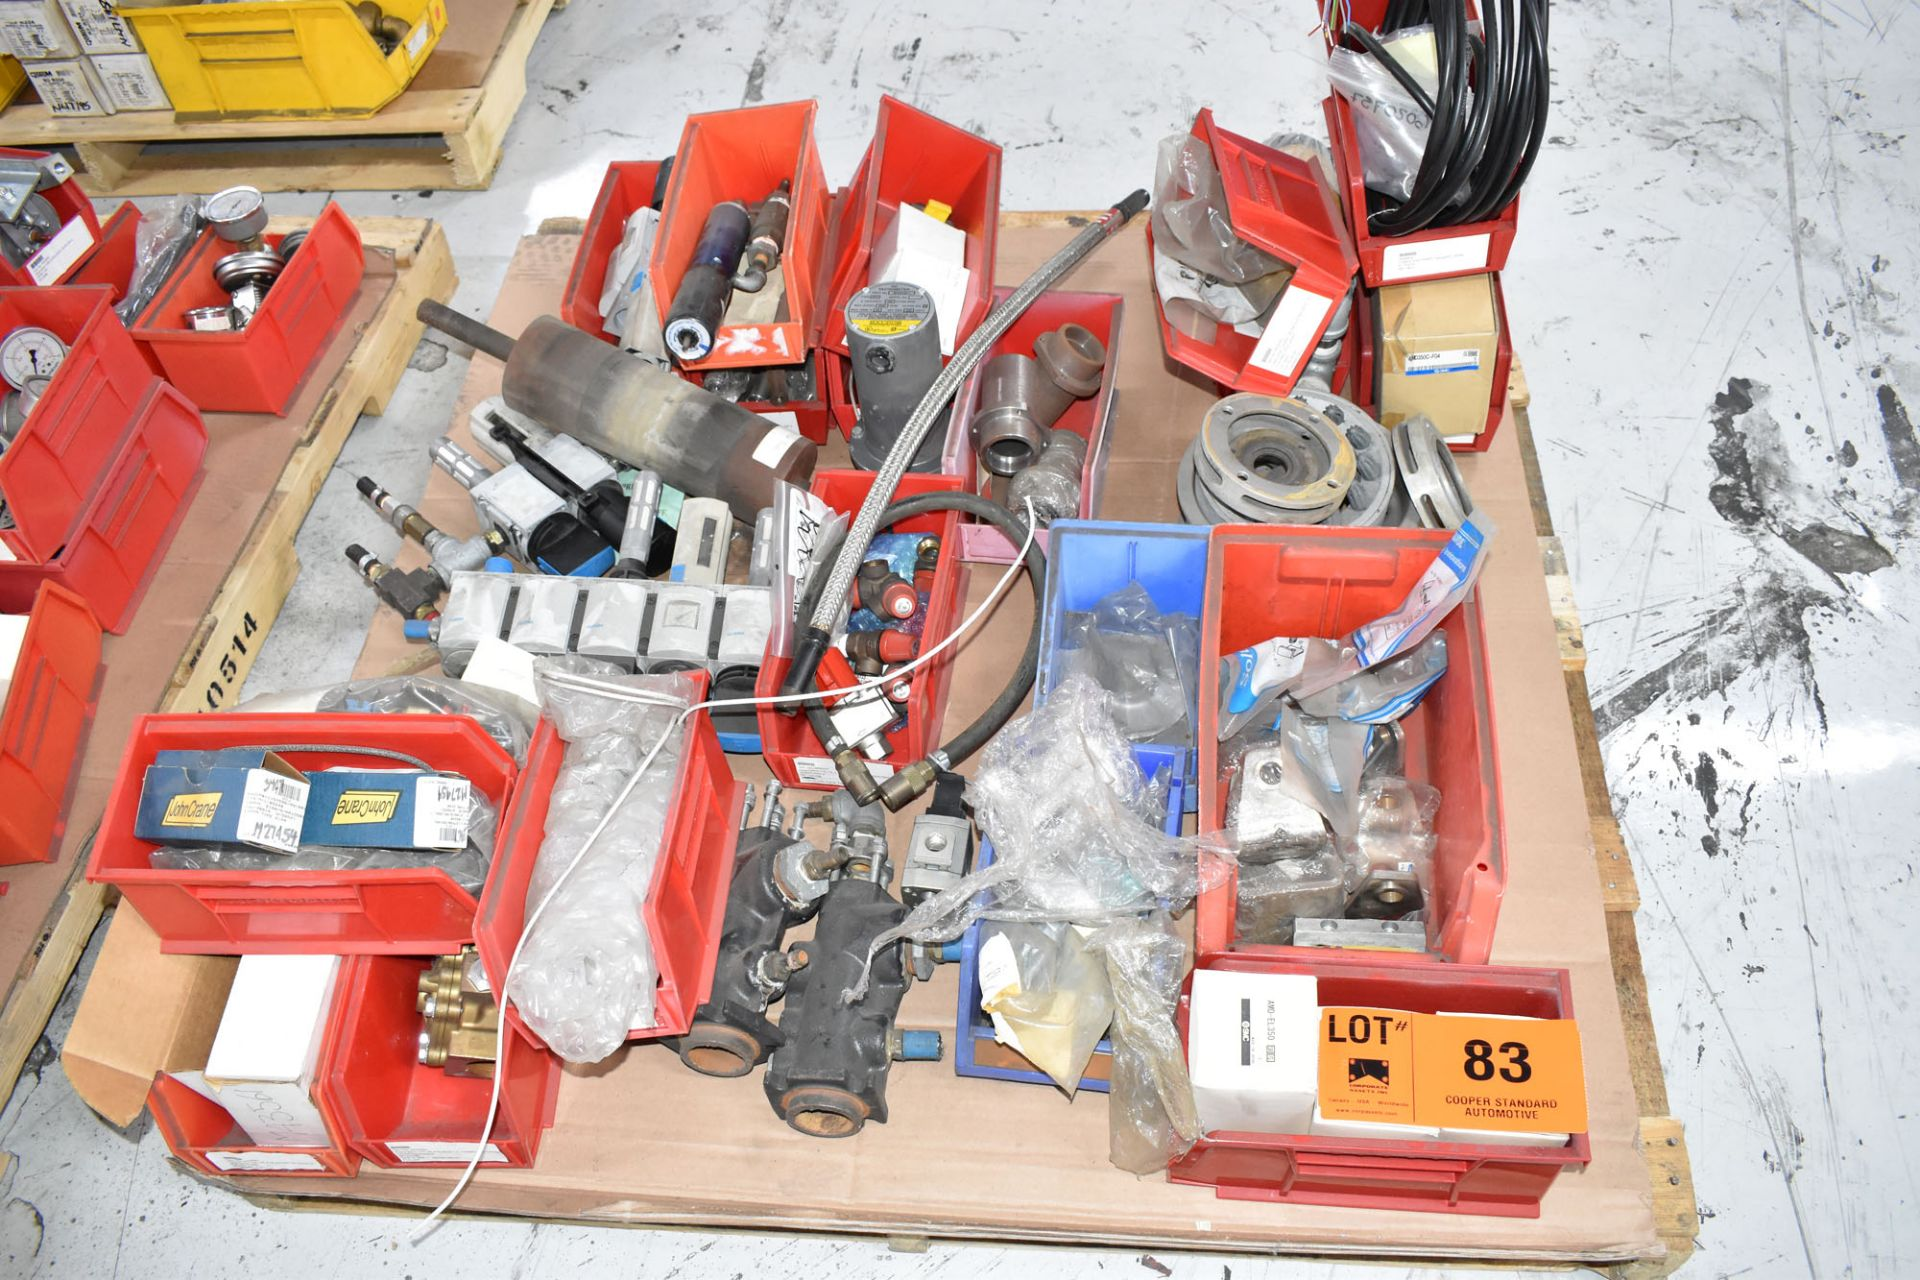 LOT/ PALLET WITH CONTENTS CONSISTING OF EXTRUDER LINE COMPONENTS [RIGGING FEES FOR LOT #83 - $50 CAD